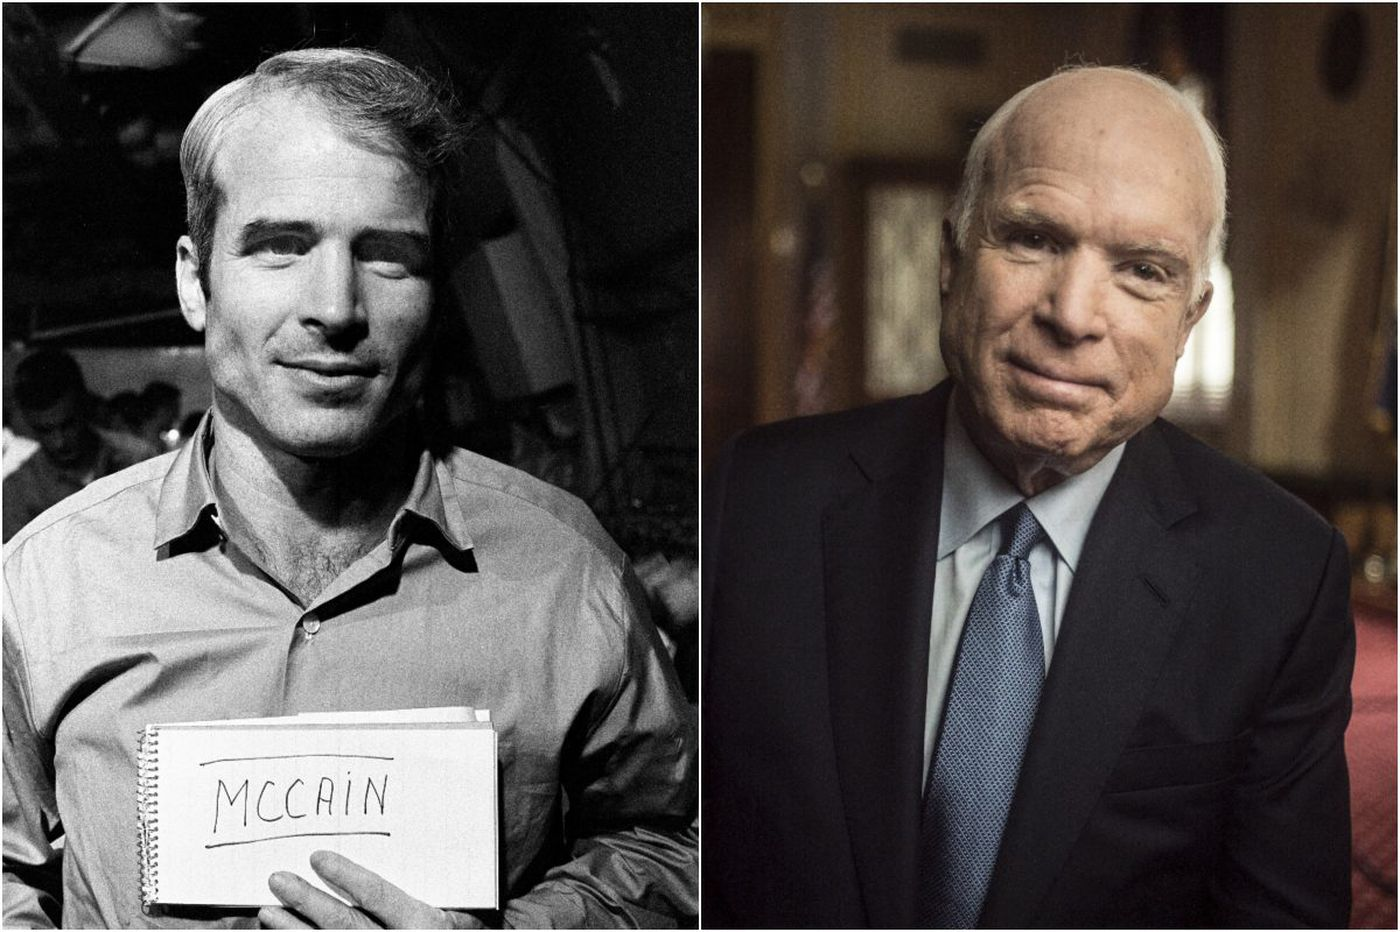 On Memorial Day, HBO's John McCain film pays tribute to an approach to politics we can't afford to forget